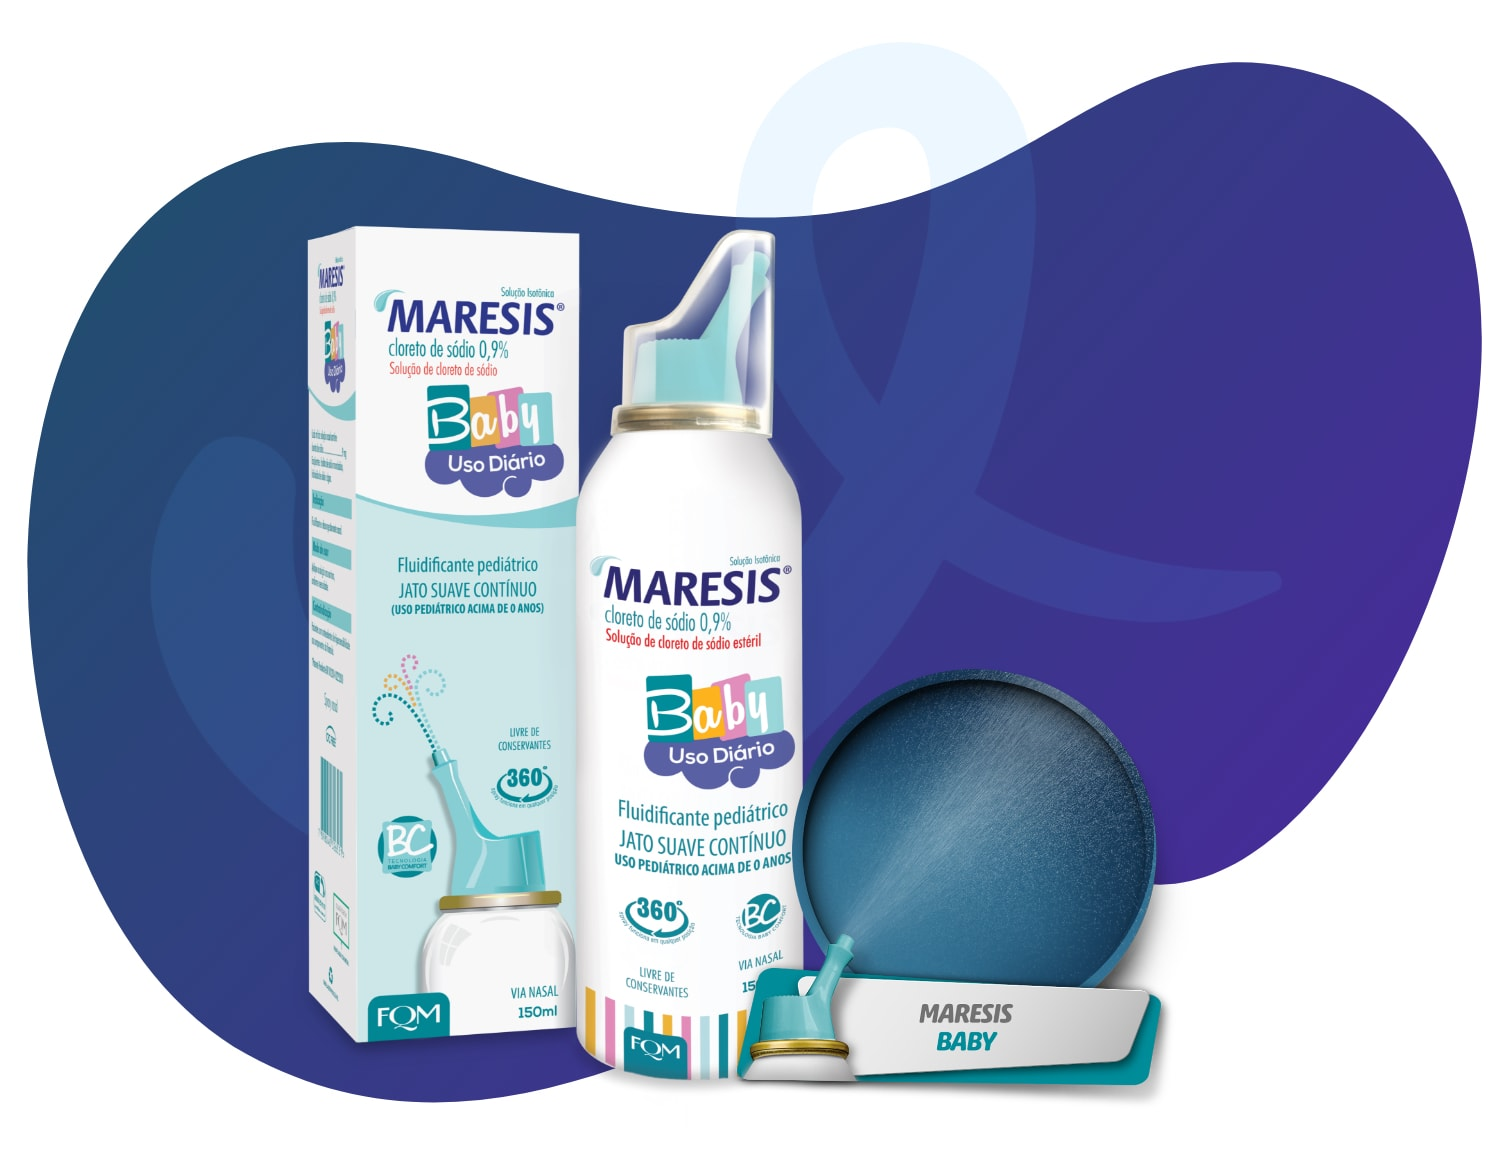 Maresis Baby